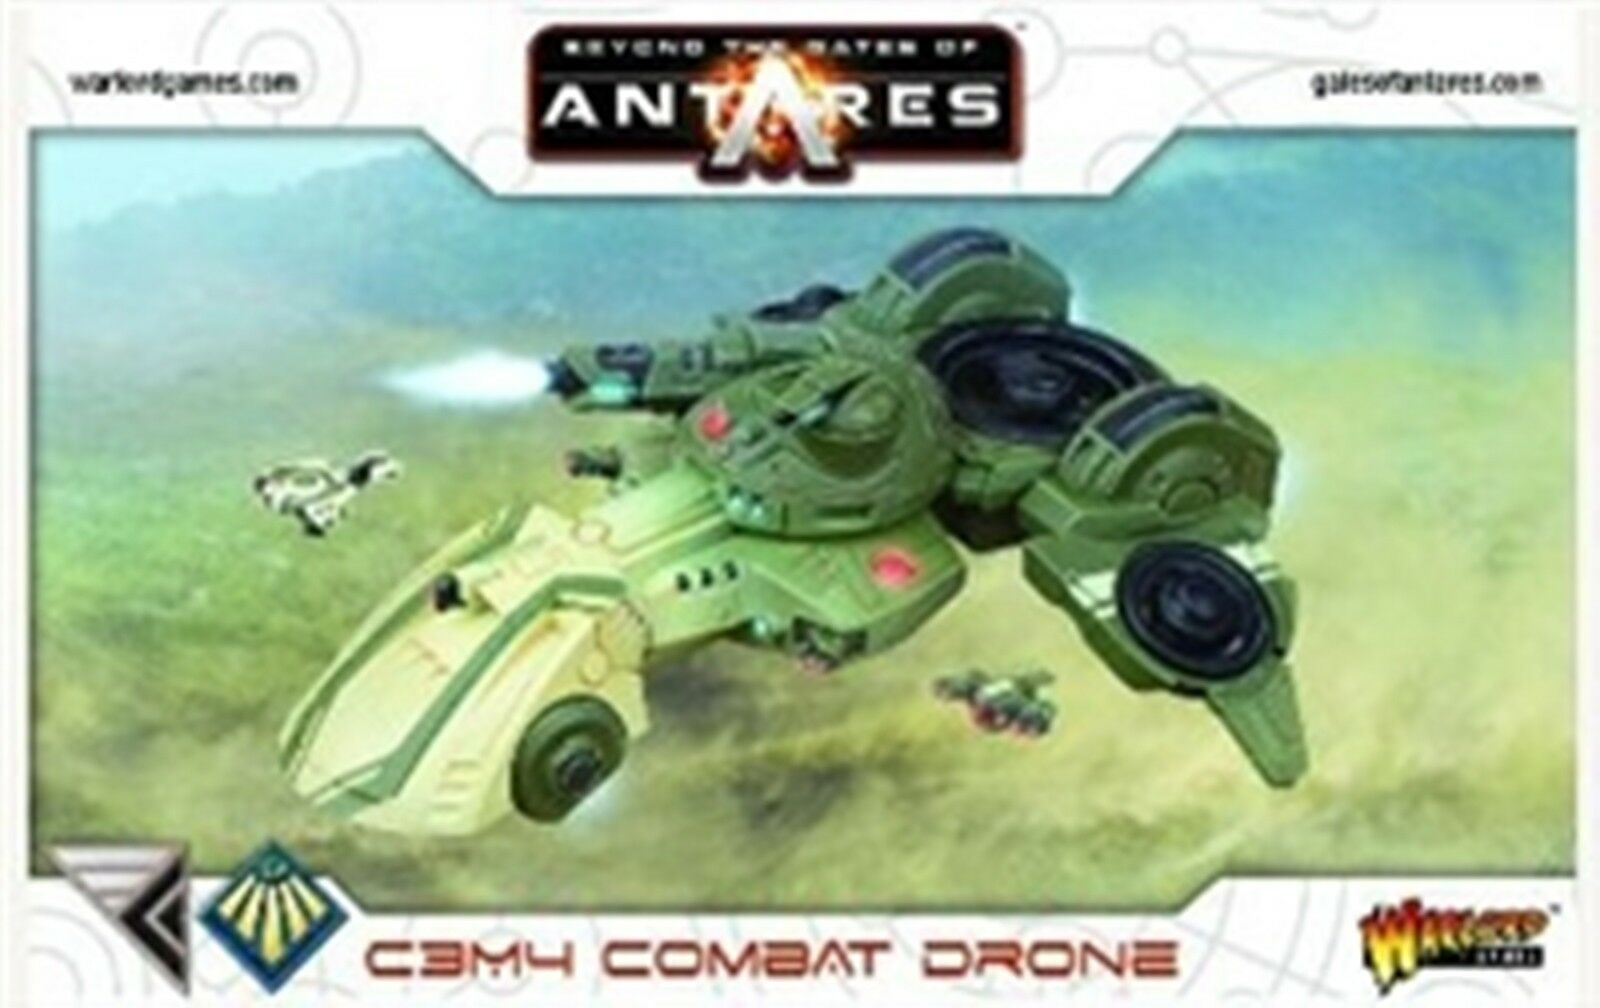 NEW GATES OF ANTARES CONCORD C3M4 COMBAT DRONE WARS GAMES FIGURES WGA-CON-07